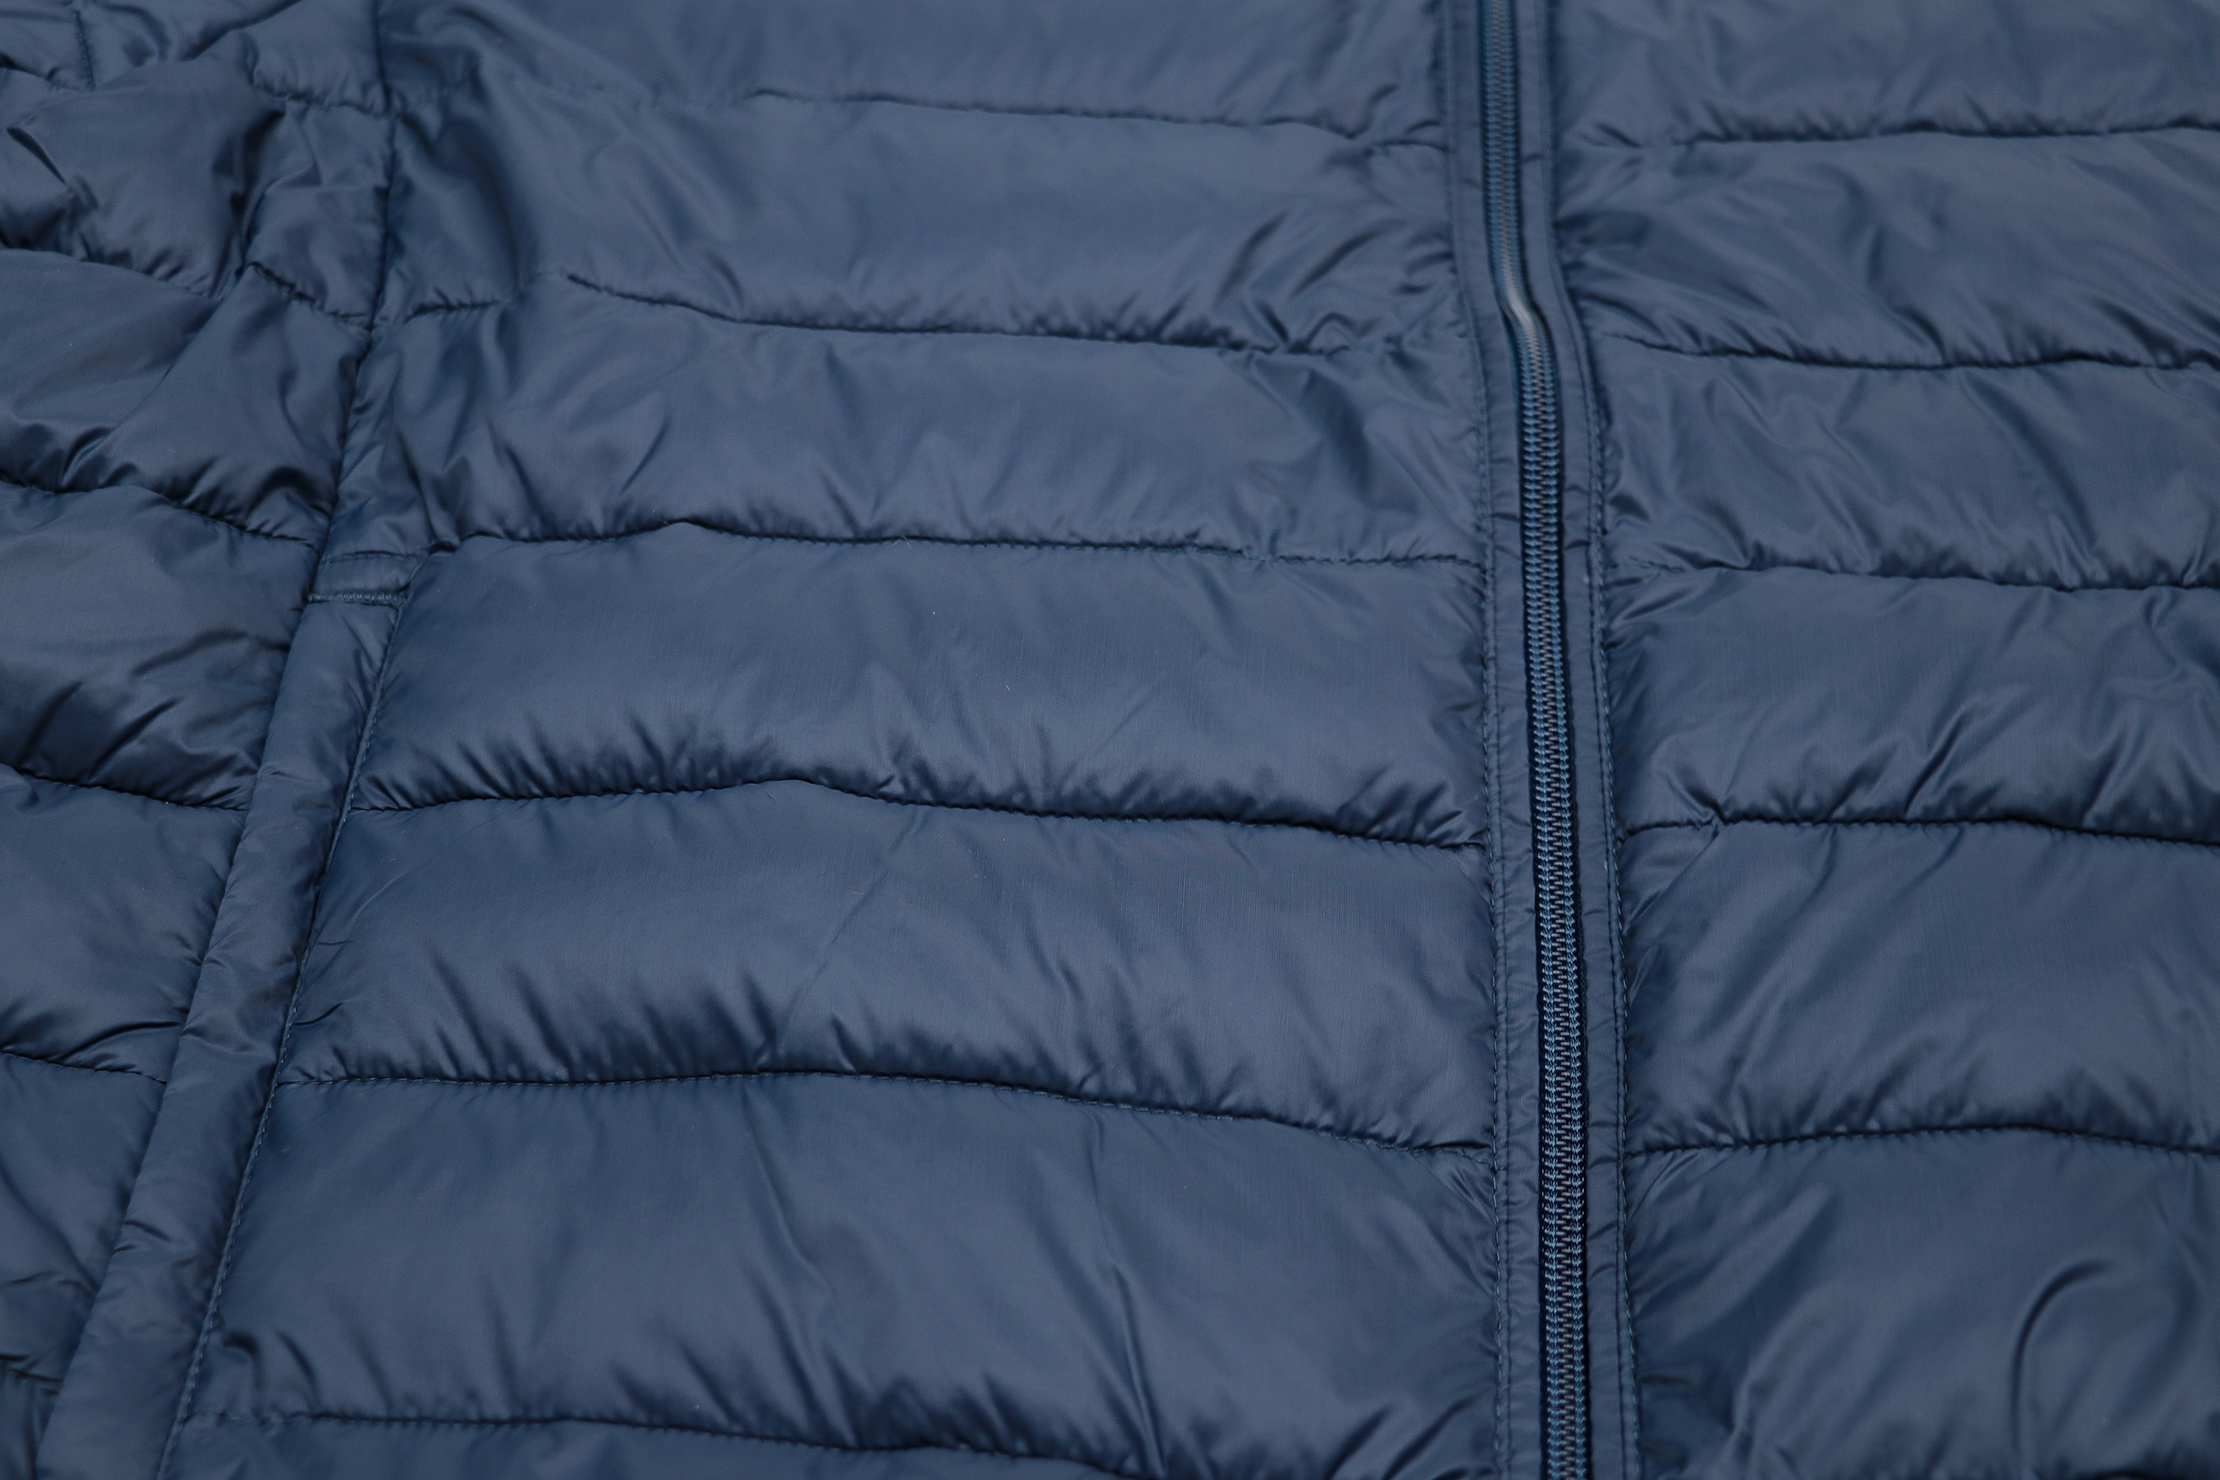 Amazon Essentials Packable Puffer Jacket Material